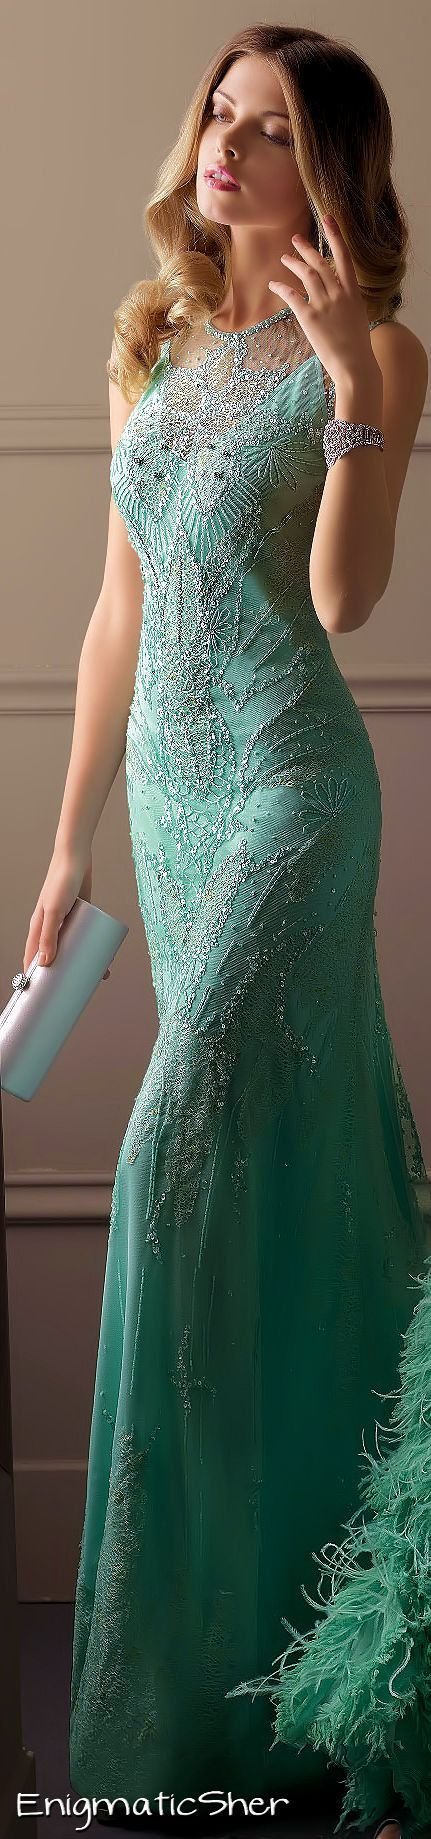 10 Hot Dress design ideas for Prom 2015 10 Hot Dress design ideas for Prom 2015 6